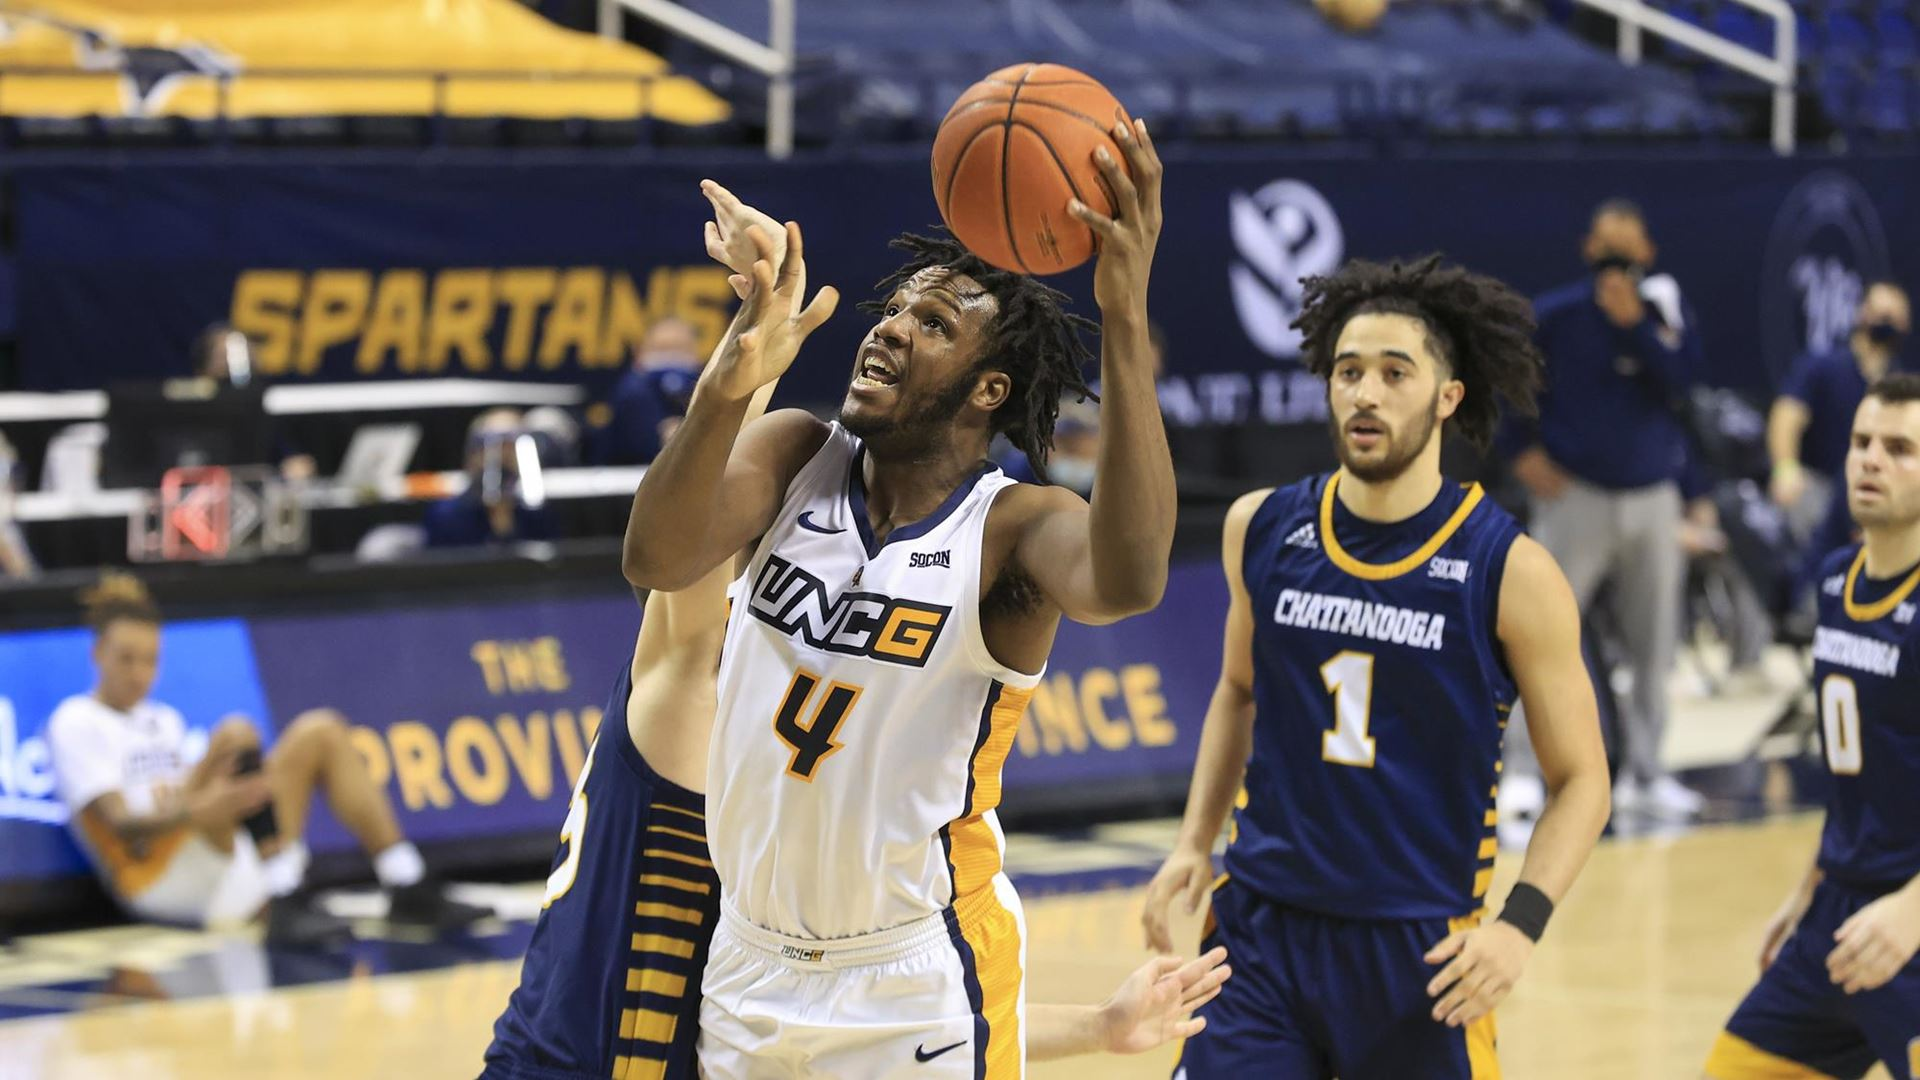 Mo Abdulsalam led UNCG in rebounds in 2020-21